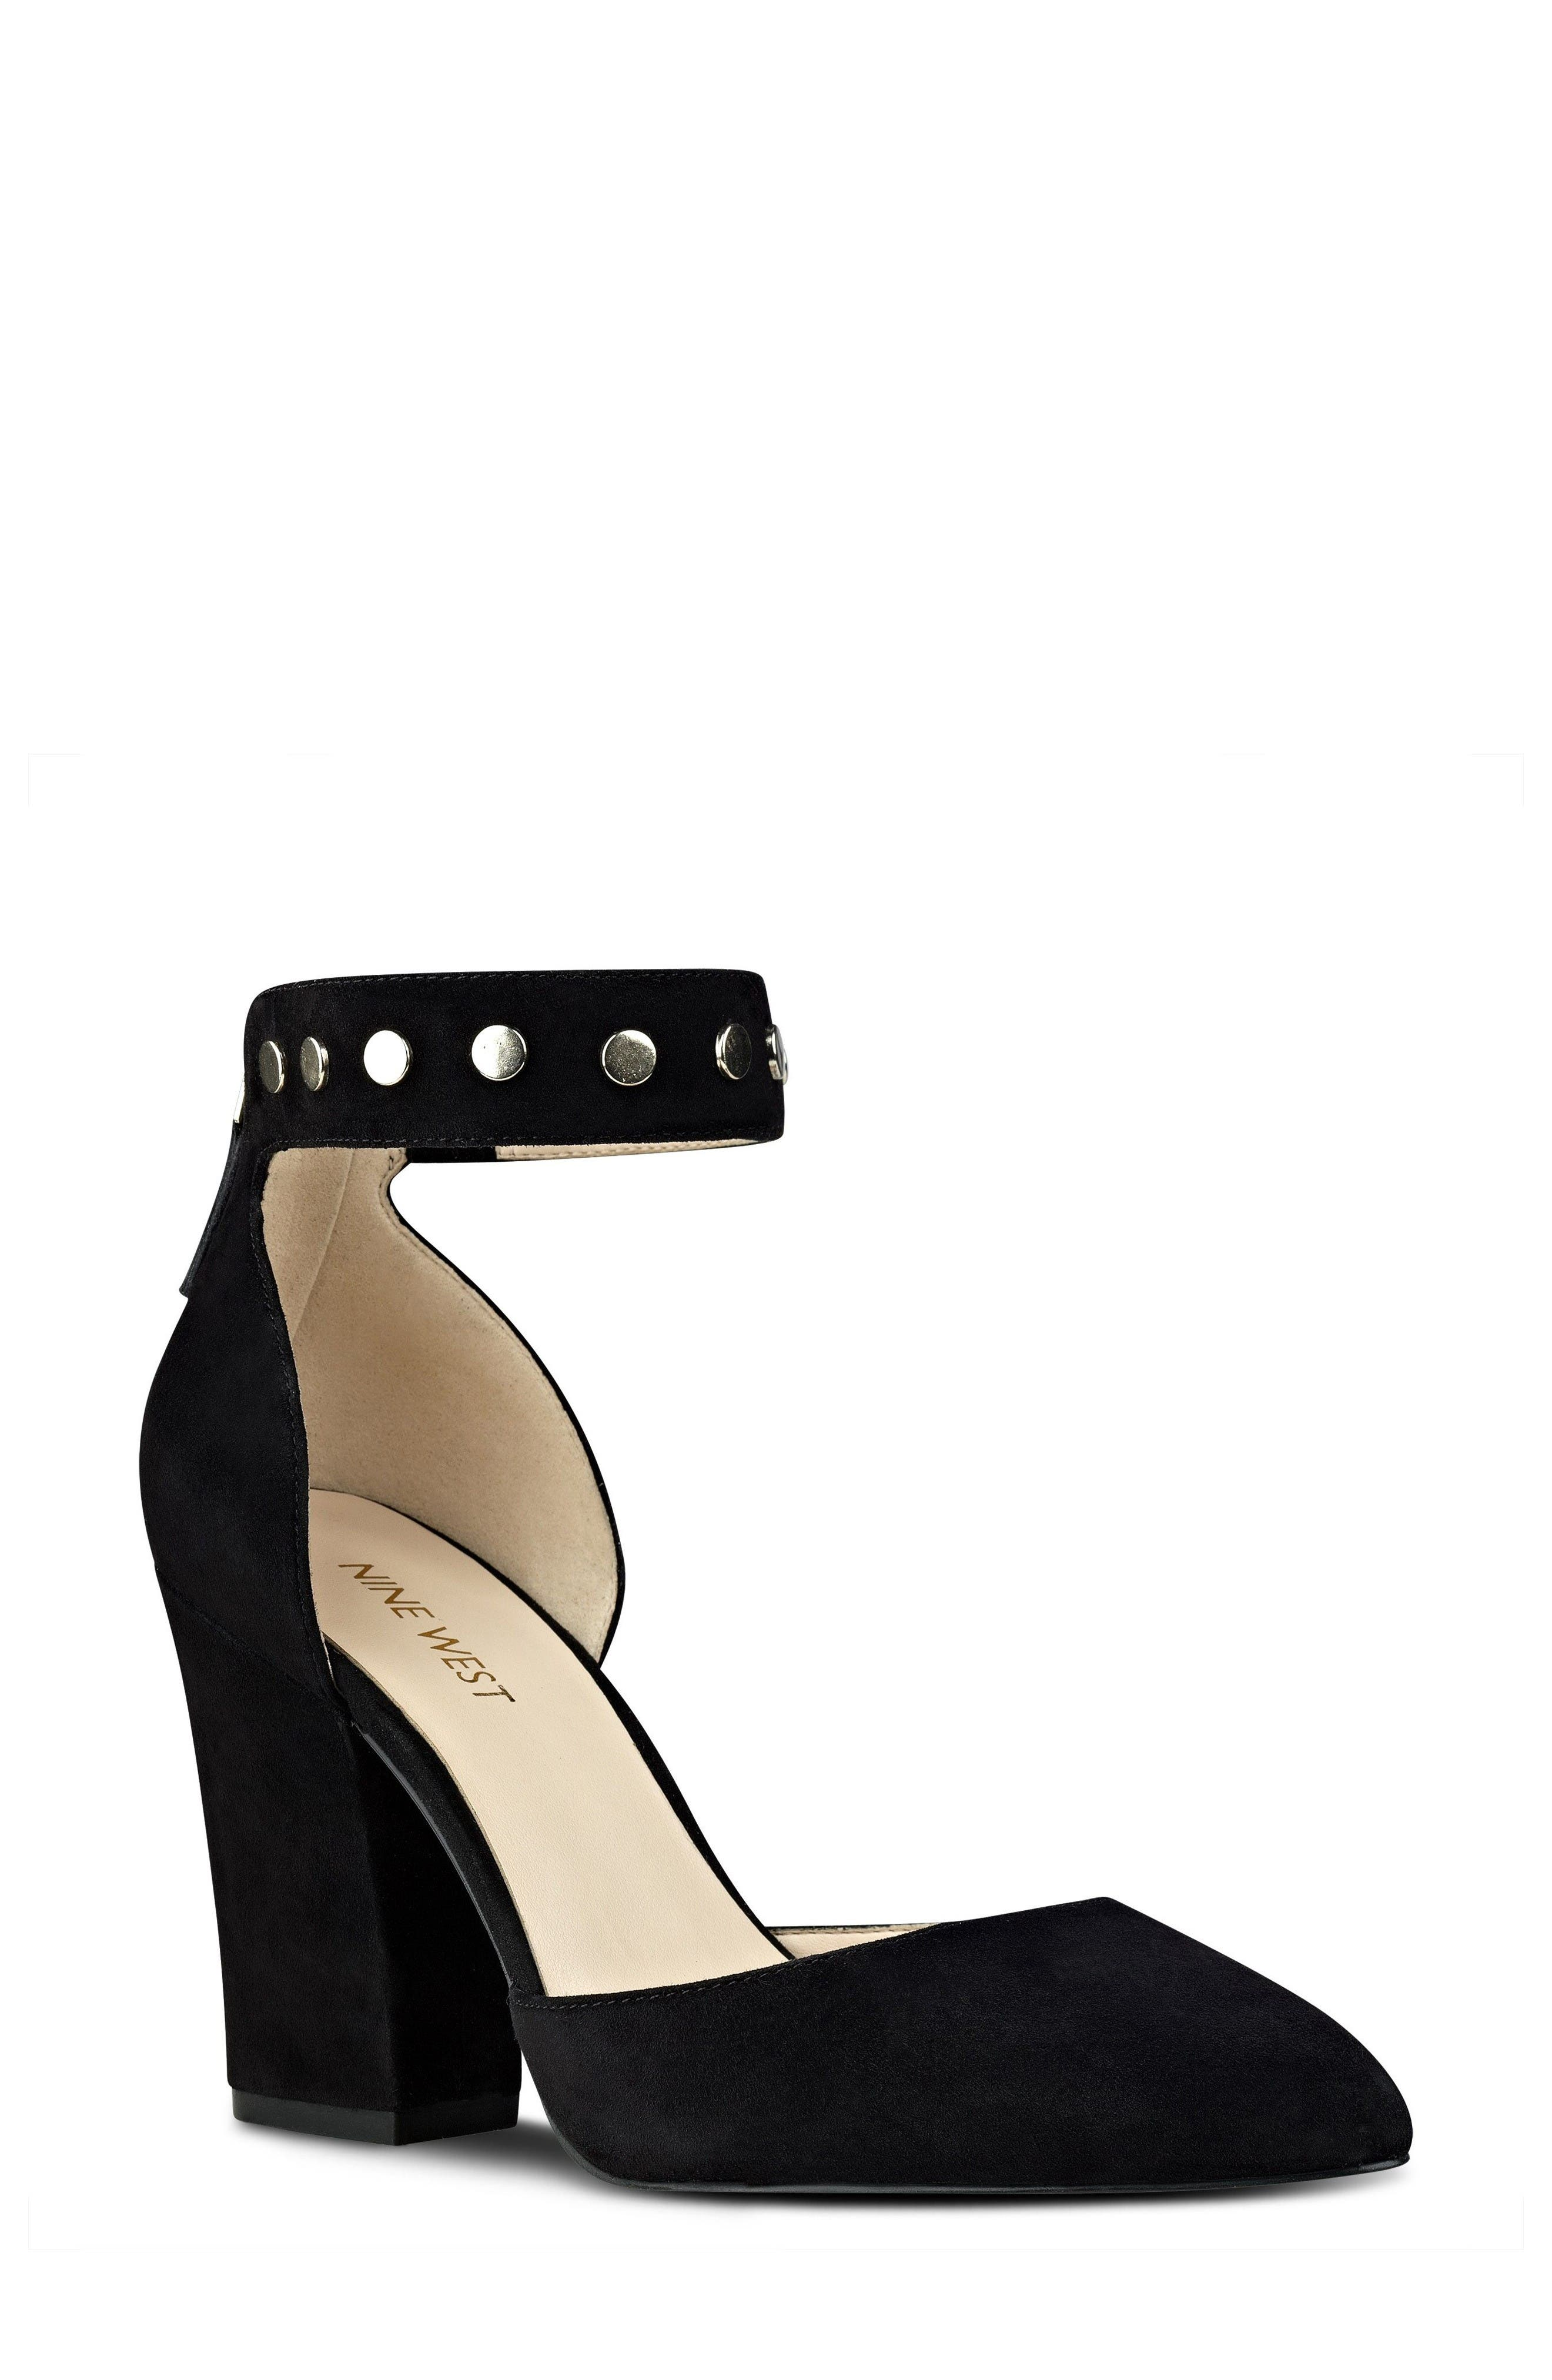 Alternate Image 1 Selected - Nine West Sharmain Pump (Women)